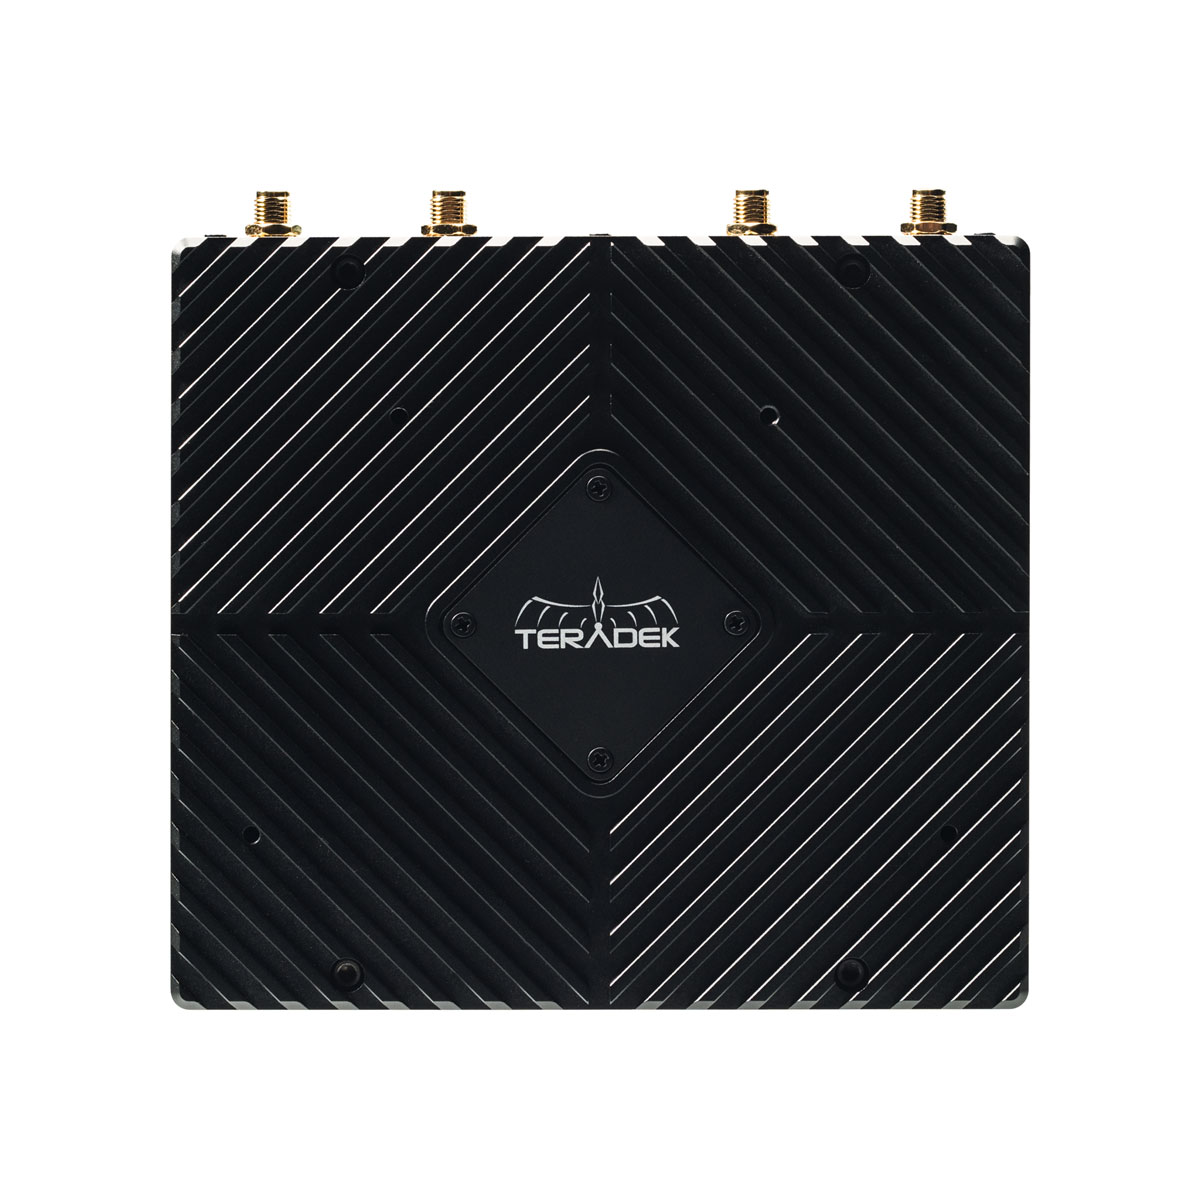 Link Pro - Cellular Bonding and Dual Band WiFi Router - No Mount